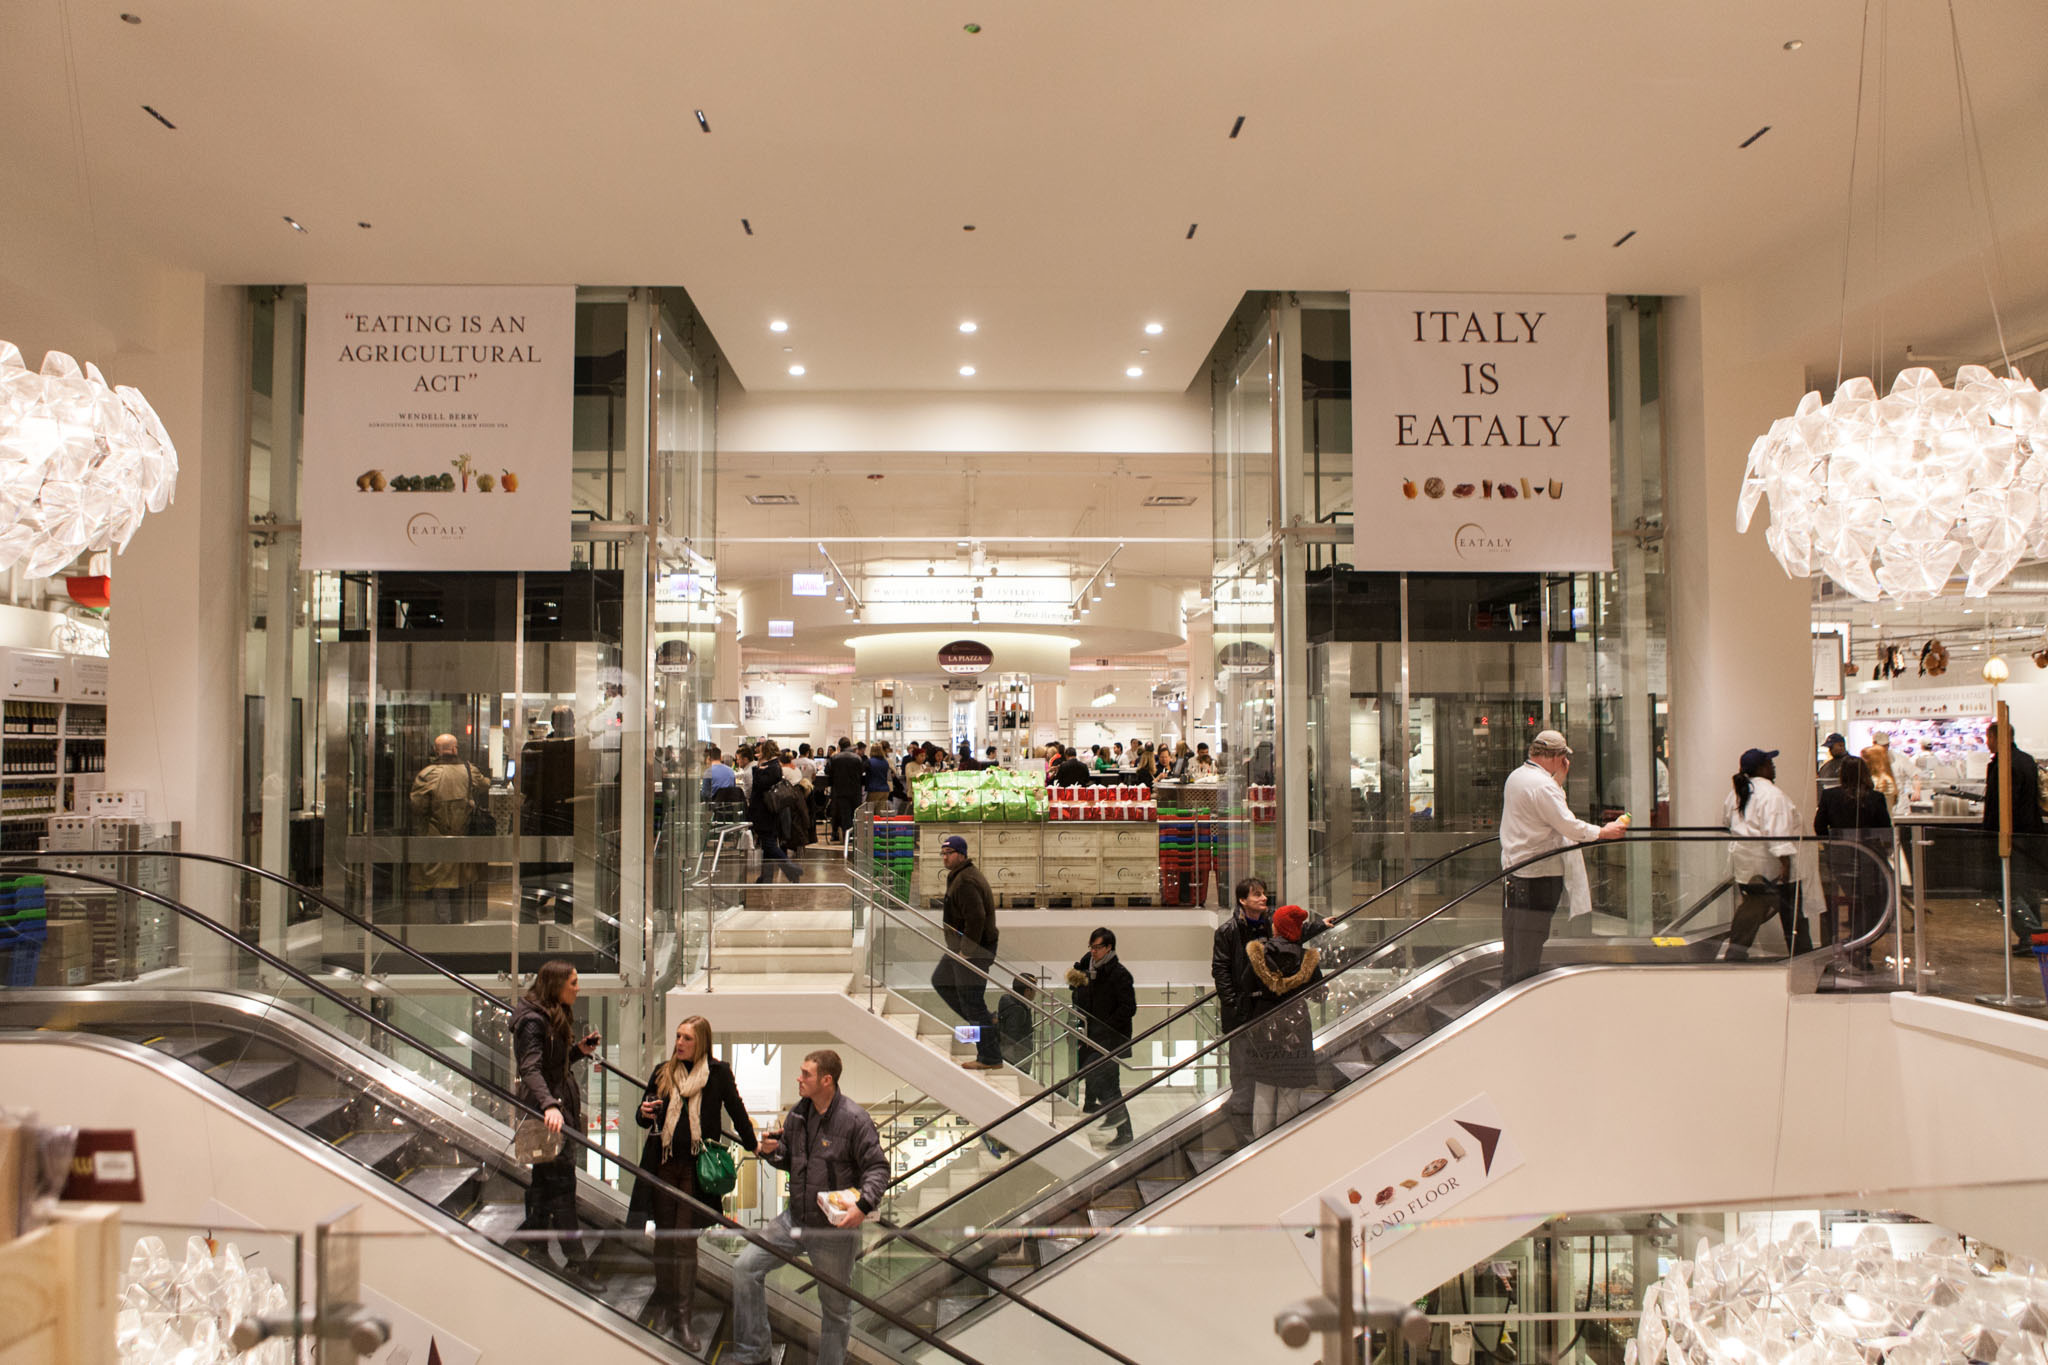 Eataly makes some changes to its restaurants